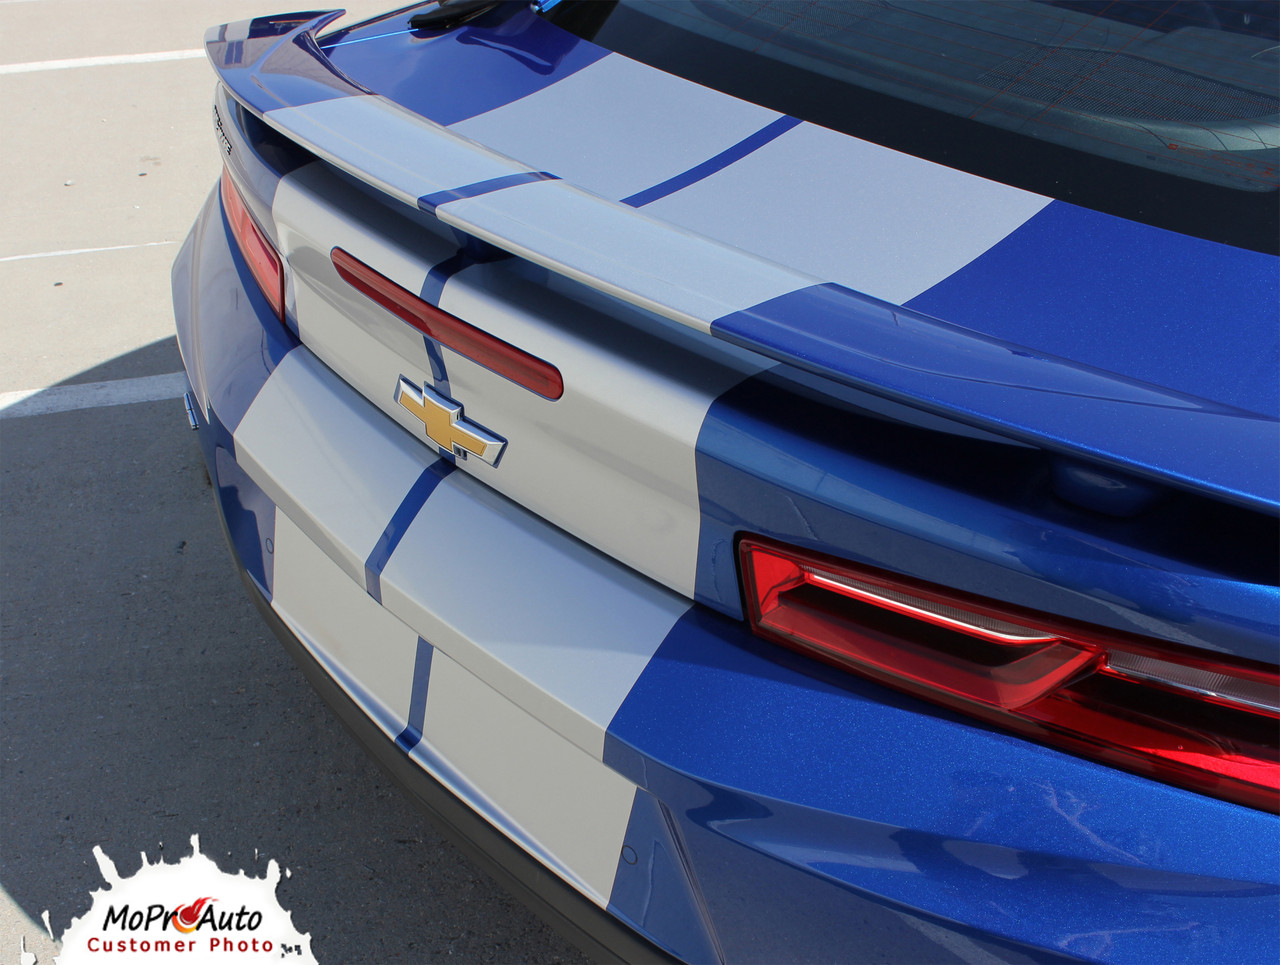 2019 Camaro Racing Stripes TURBO RALLY 19 : Chevy Camaro Hood Decals Center  Rally Vinyl Graphics Kit